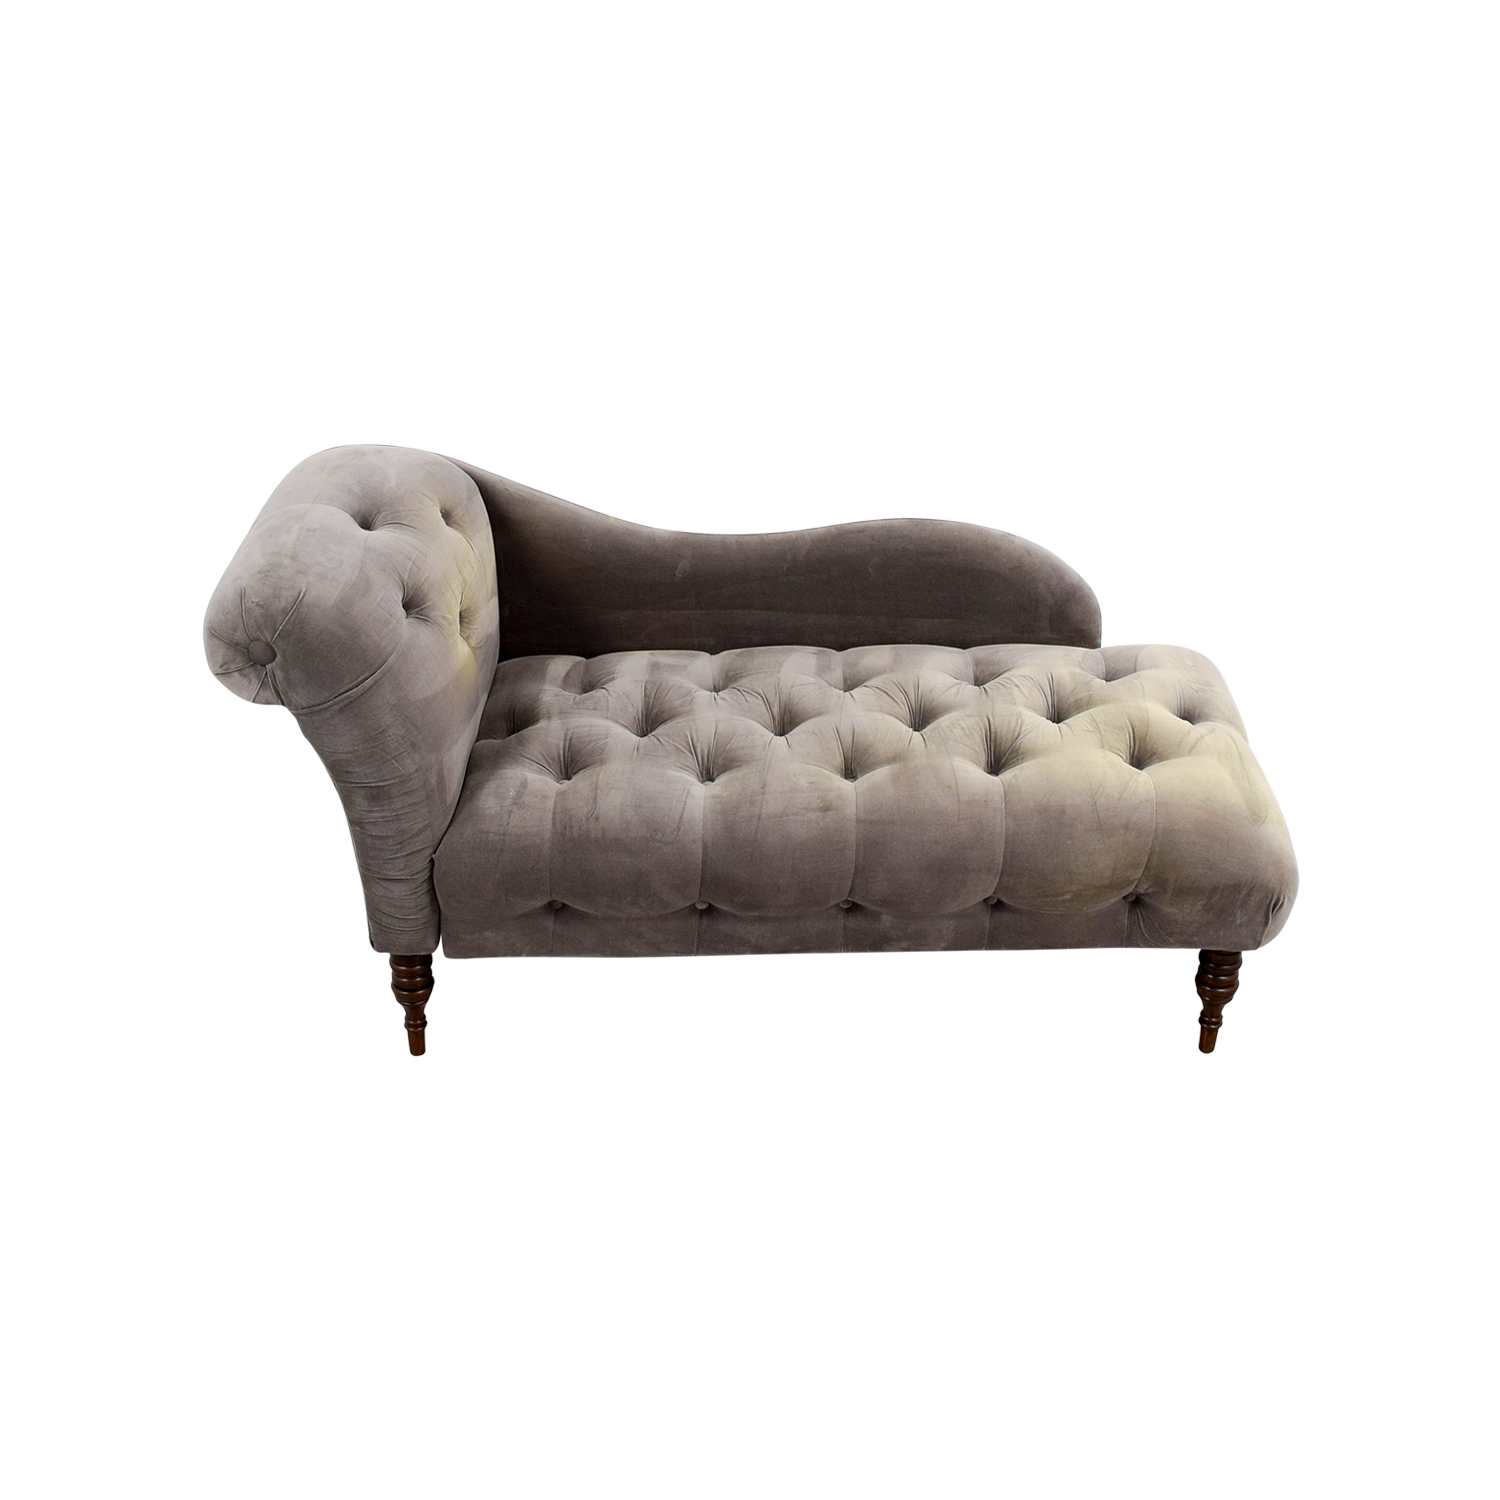 shop One Kings Lane Francis Smoke Chaise Lounge One Kings Lane Chaises